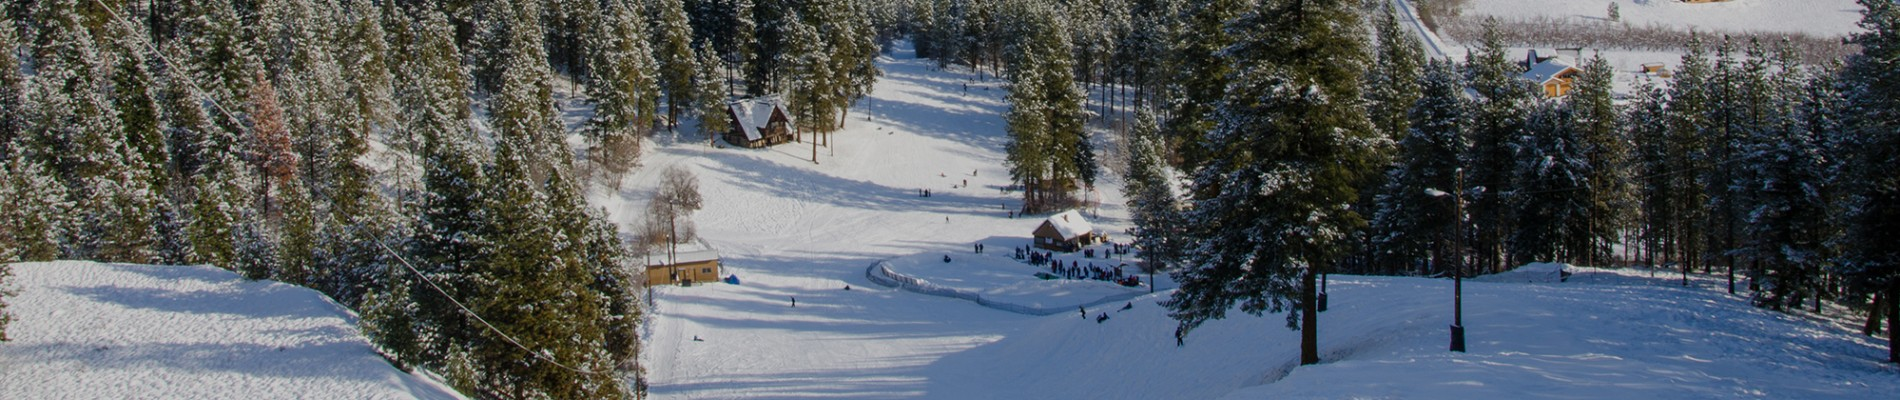 plan your winter visit to leavenworth ski hill